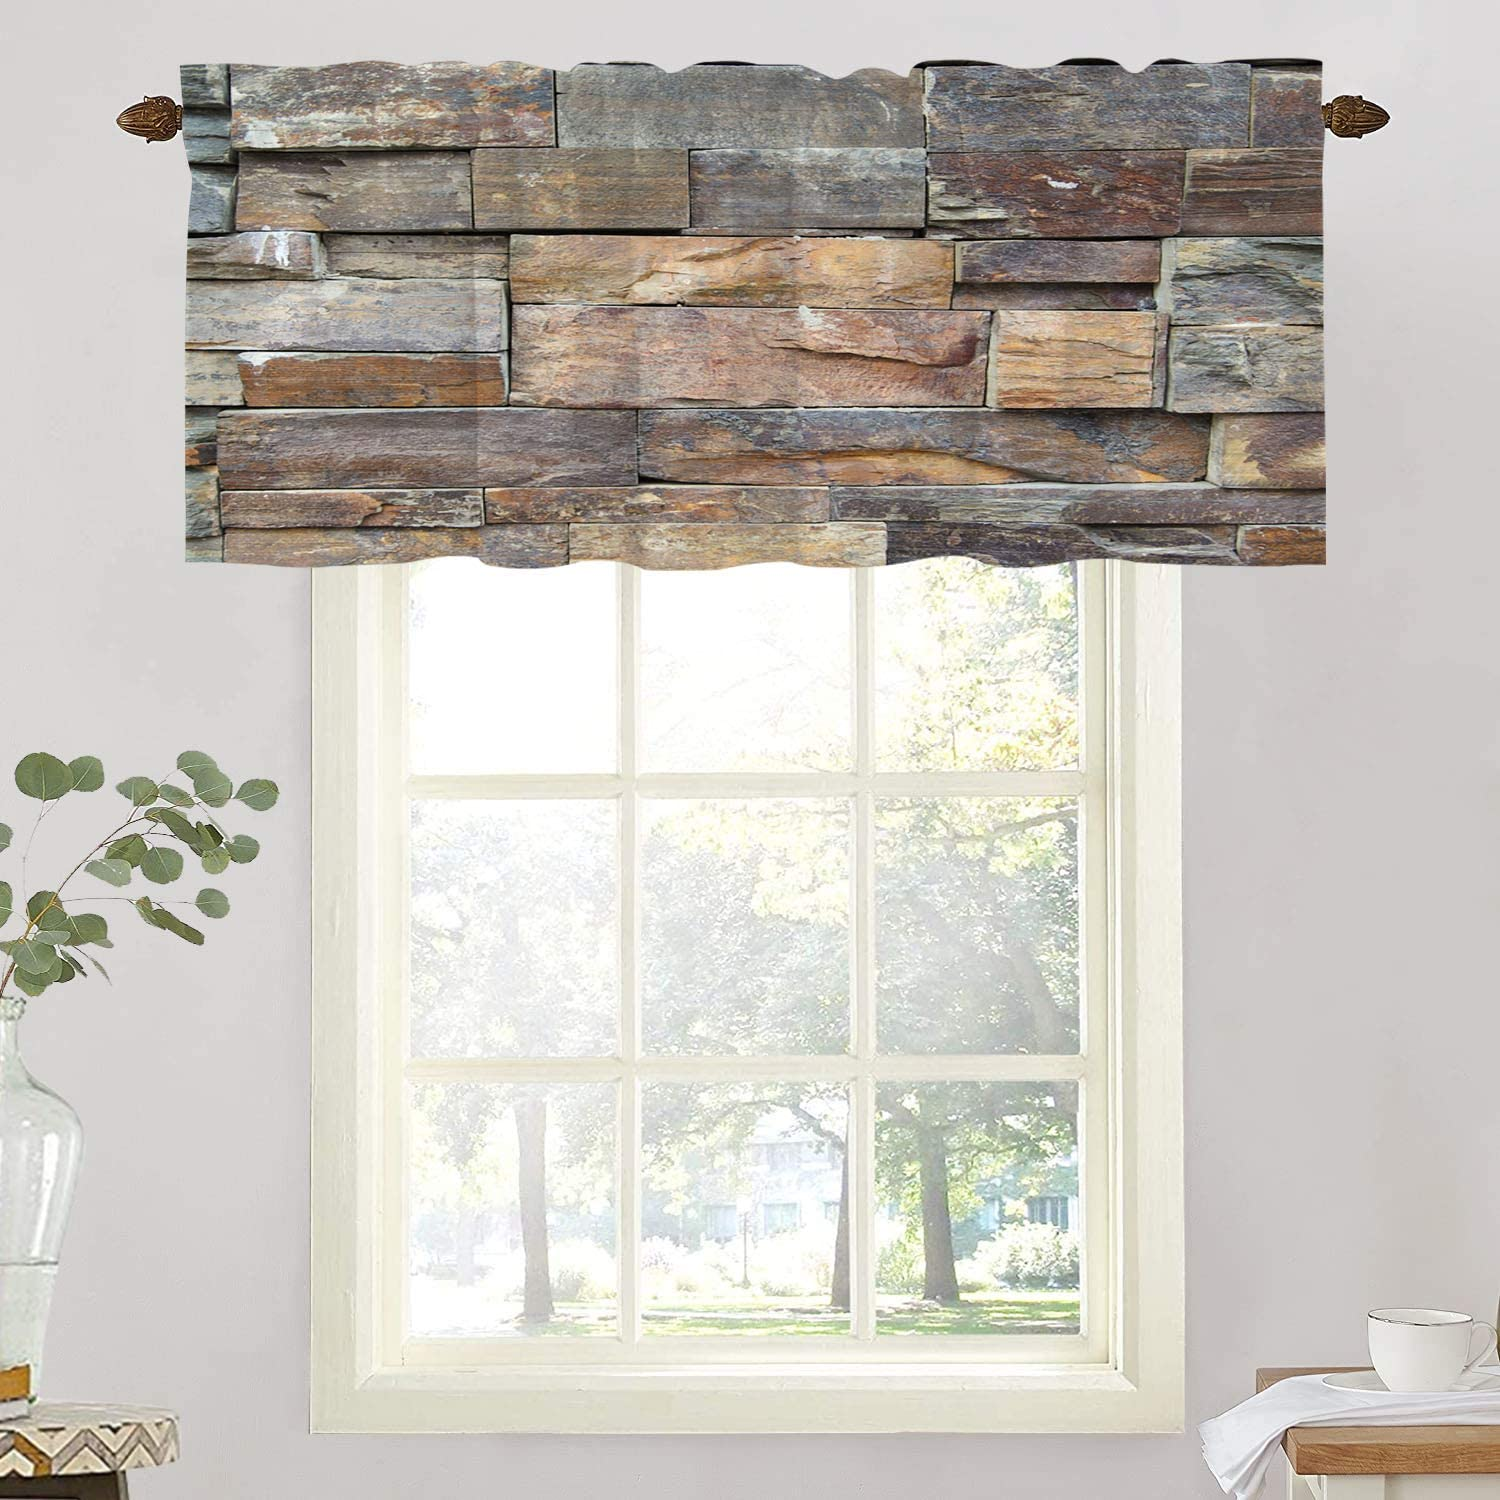 BaoNews Brick Stone Marble Kitchen Valances Half Window Curtain, Brown Rough Brick Stone for Colorful Marble Wall Blackout Decoration Window Valances Curtains Drapes for Kitchen Bedroom